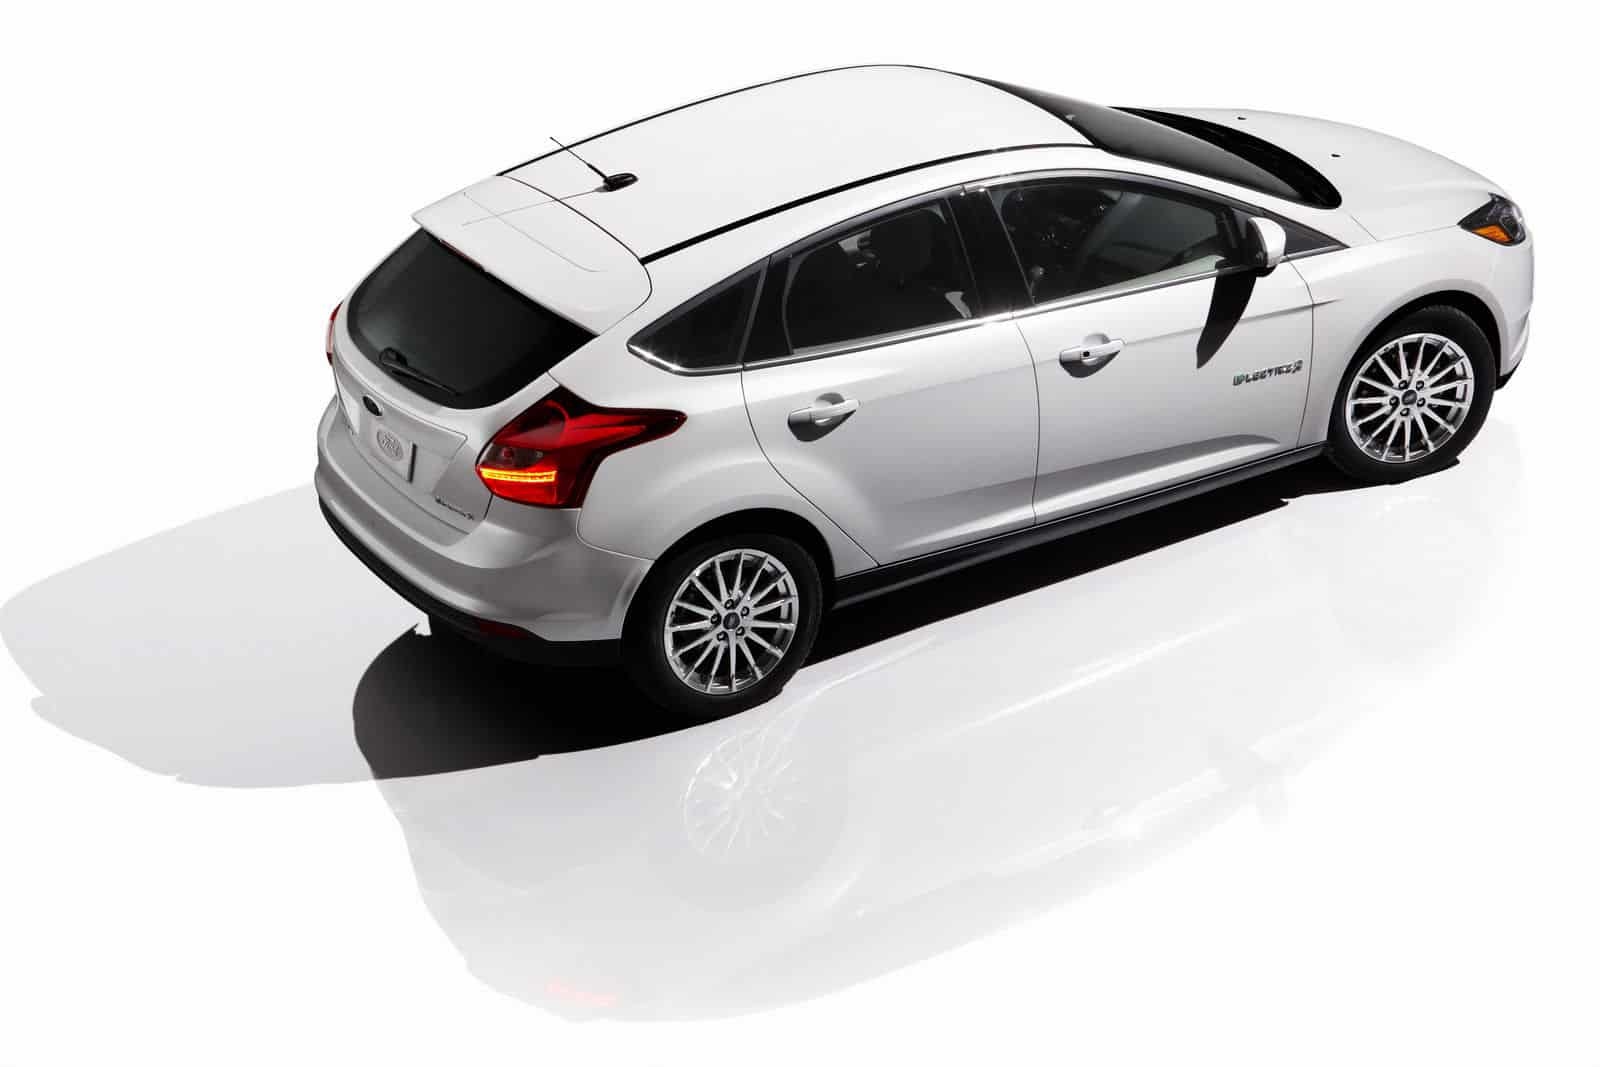 2012 Ford Focus EV Top View